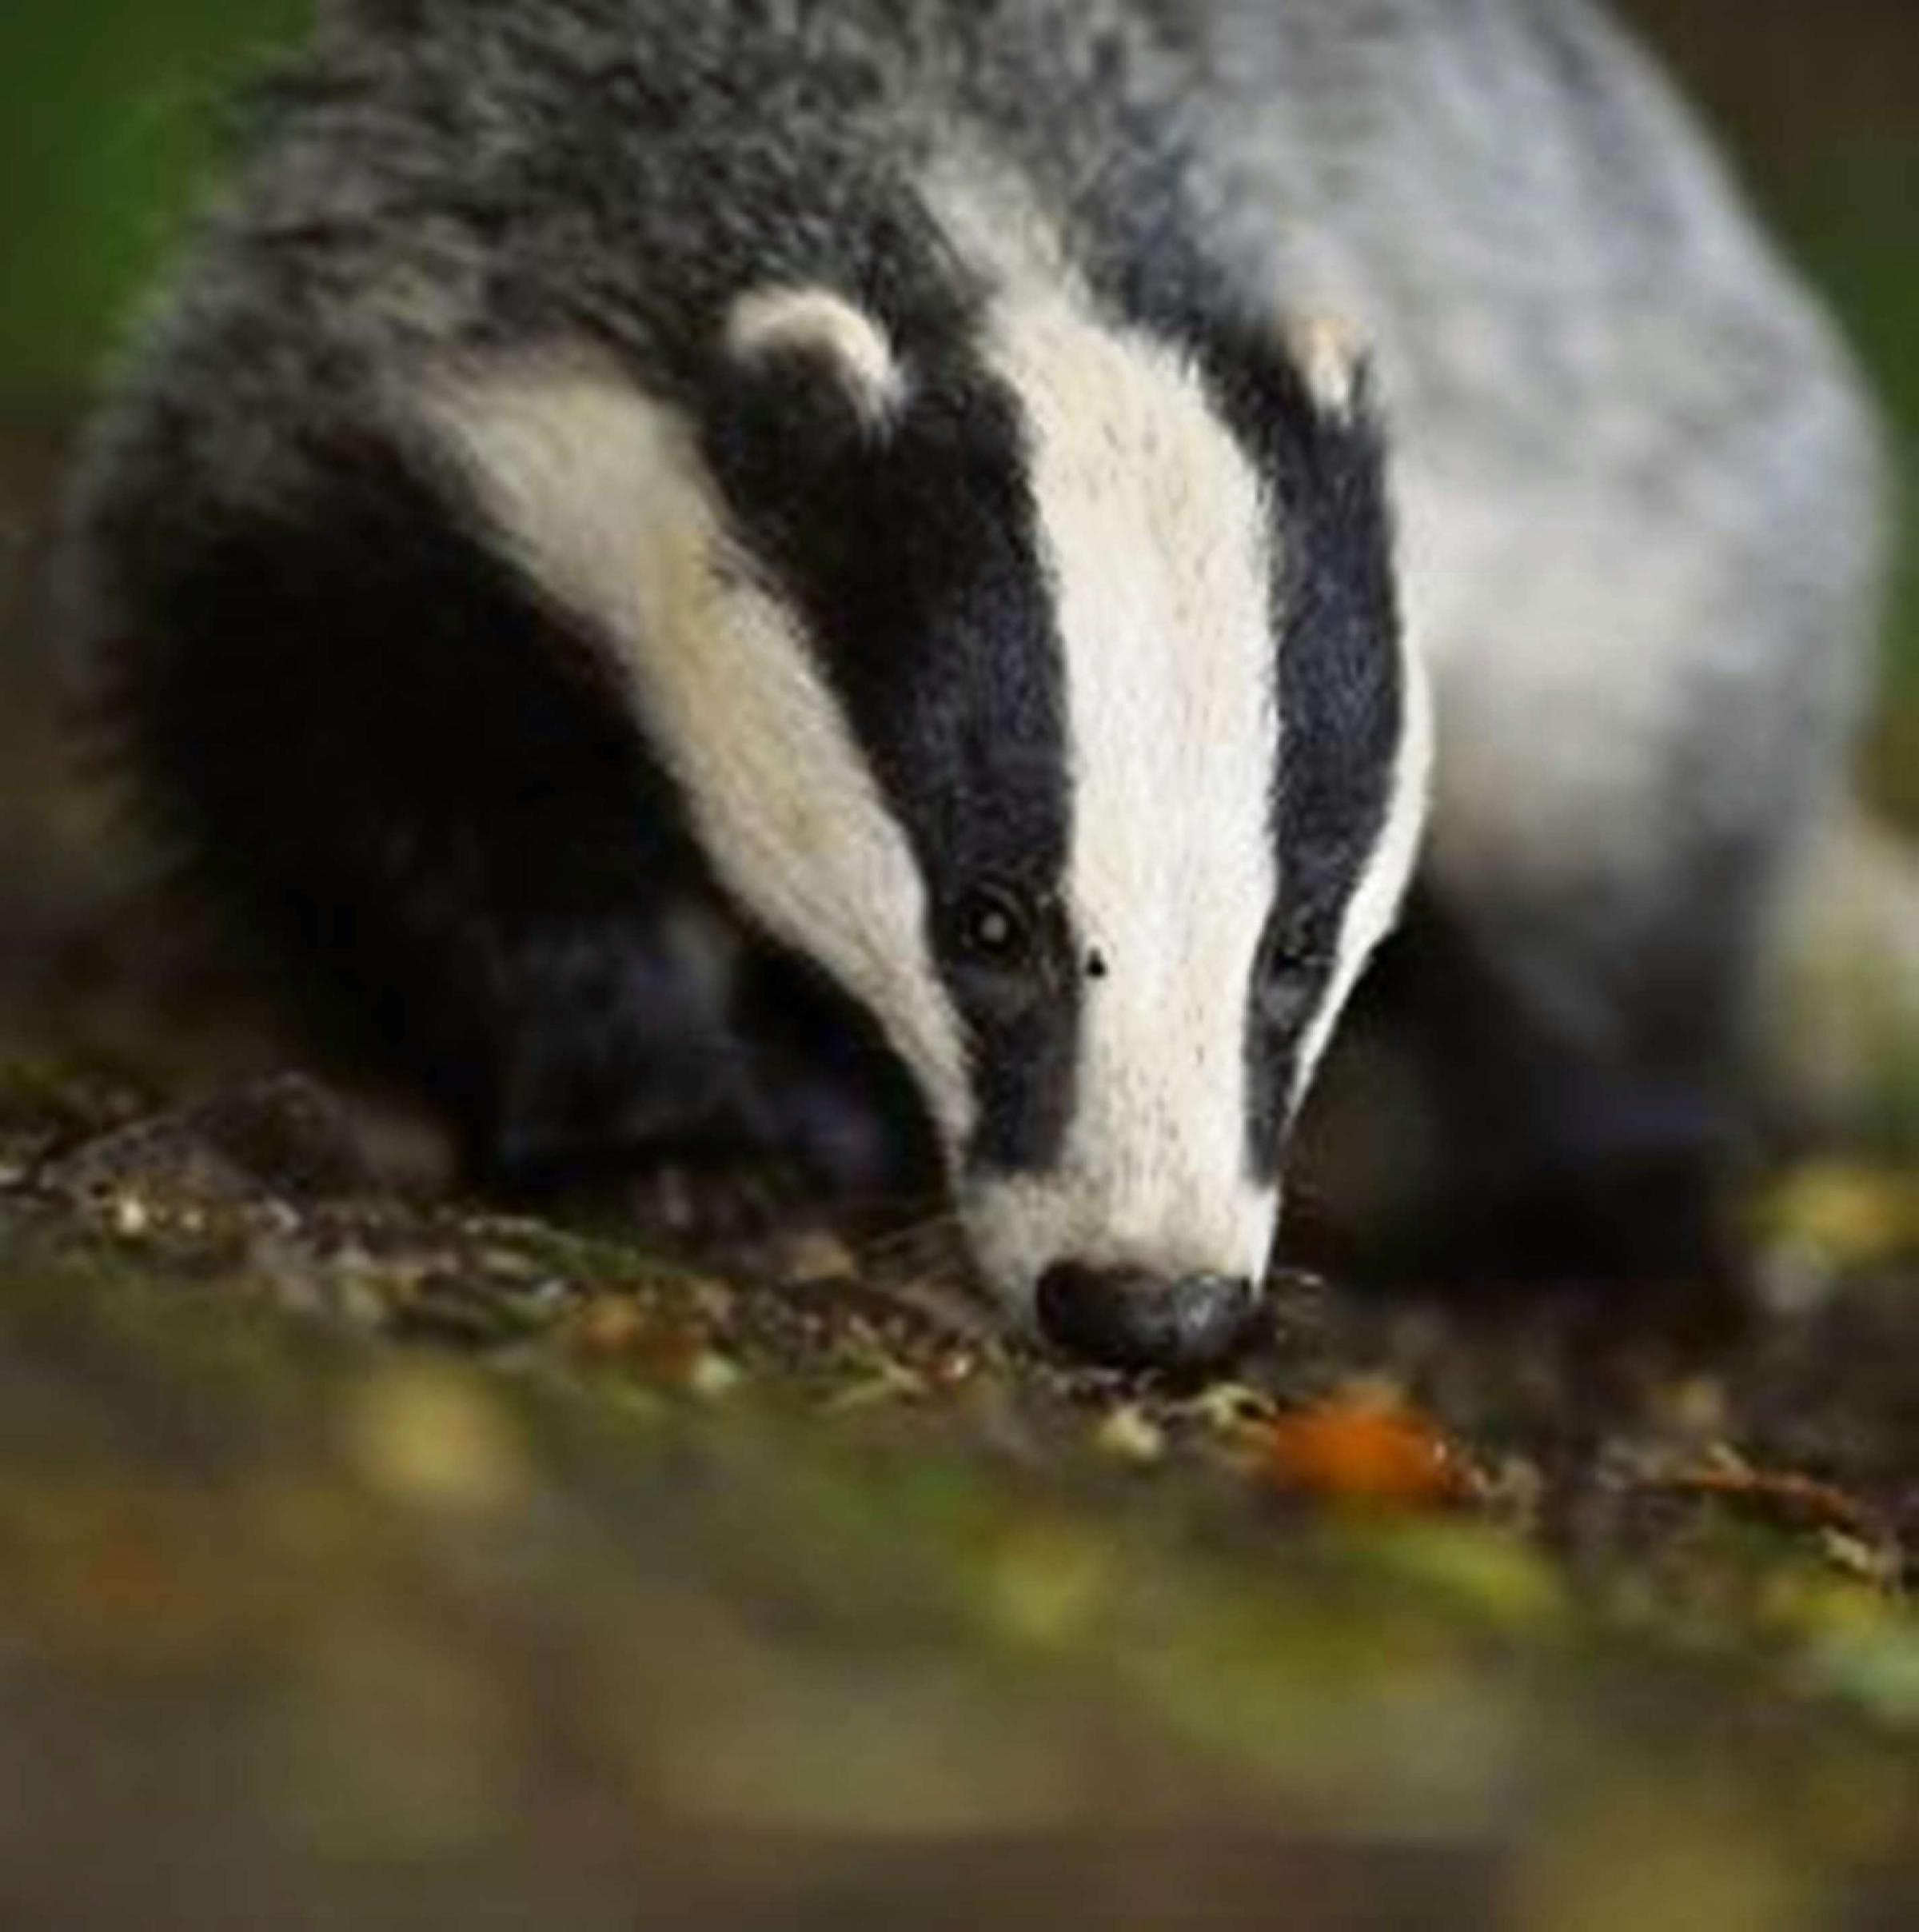 An innovative feeder is proving to be an effective badger deterrent